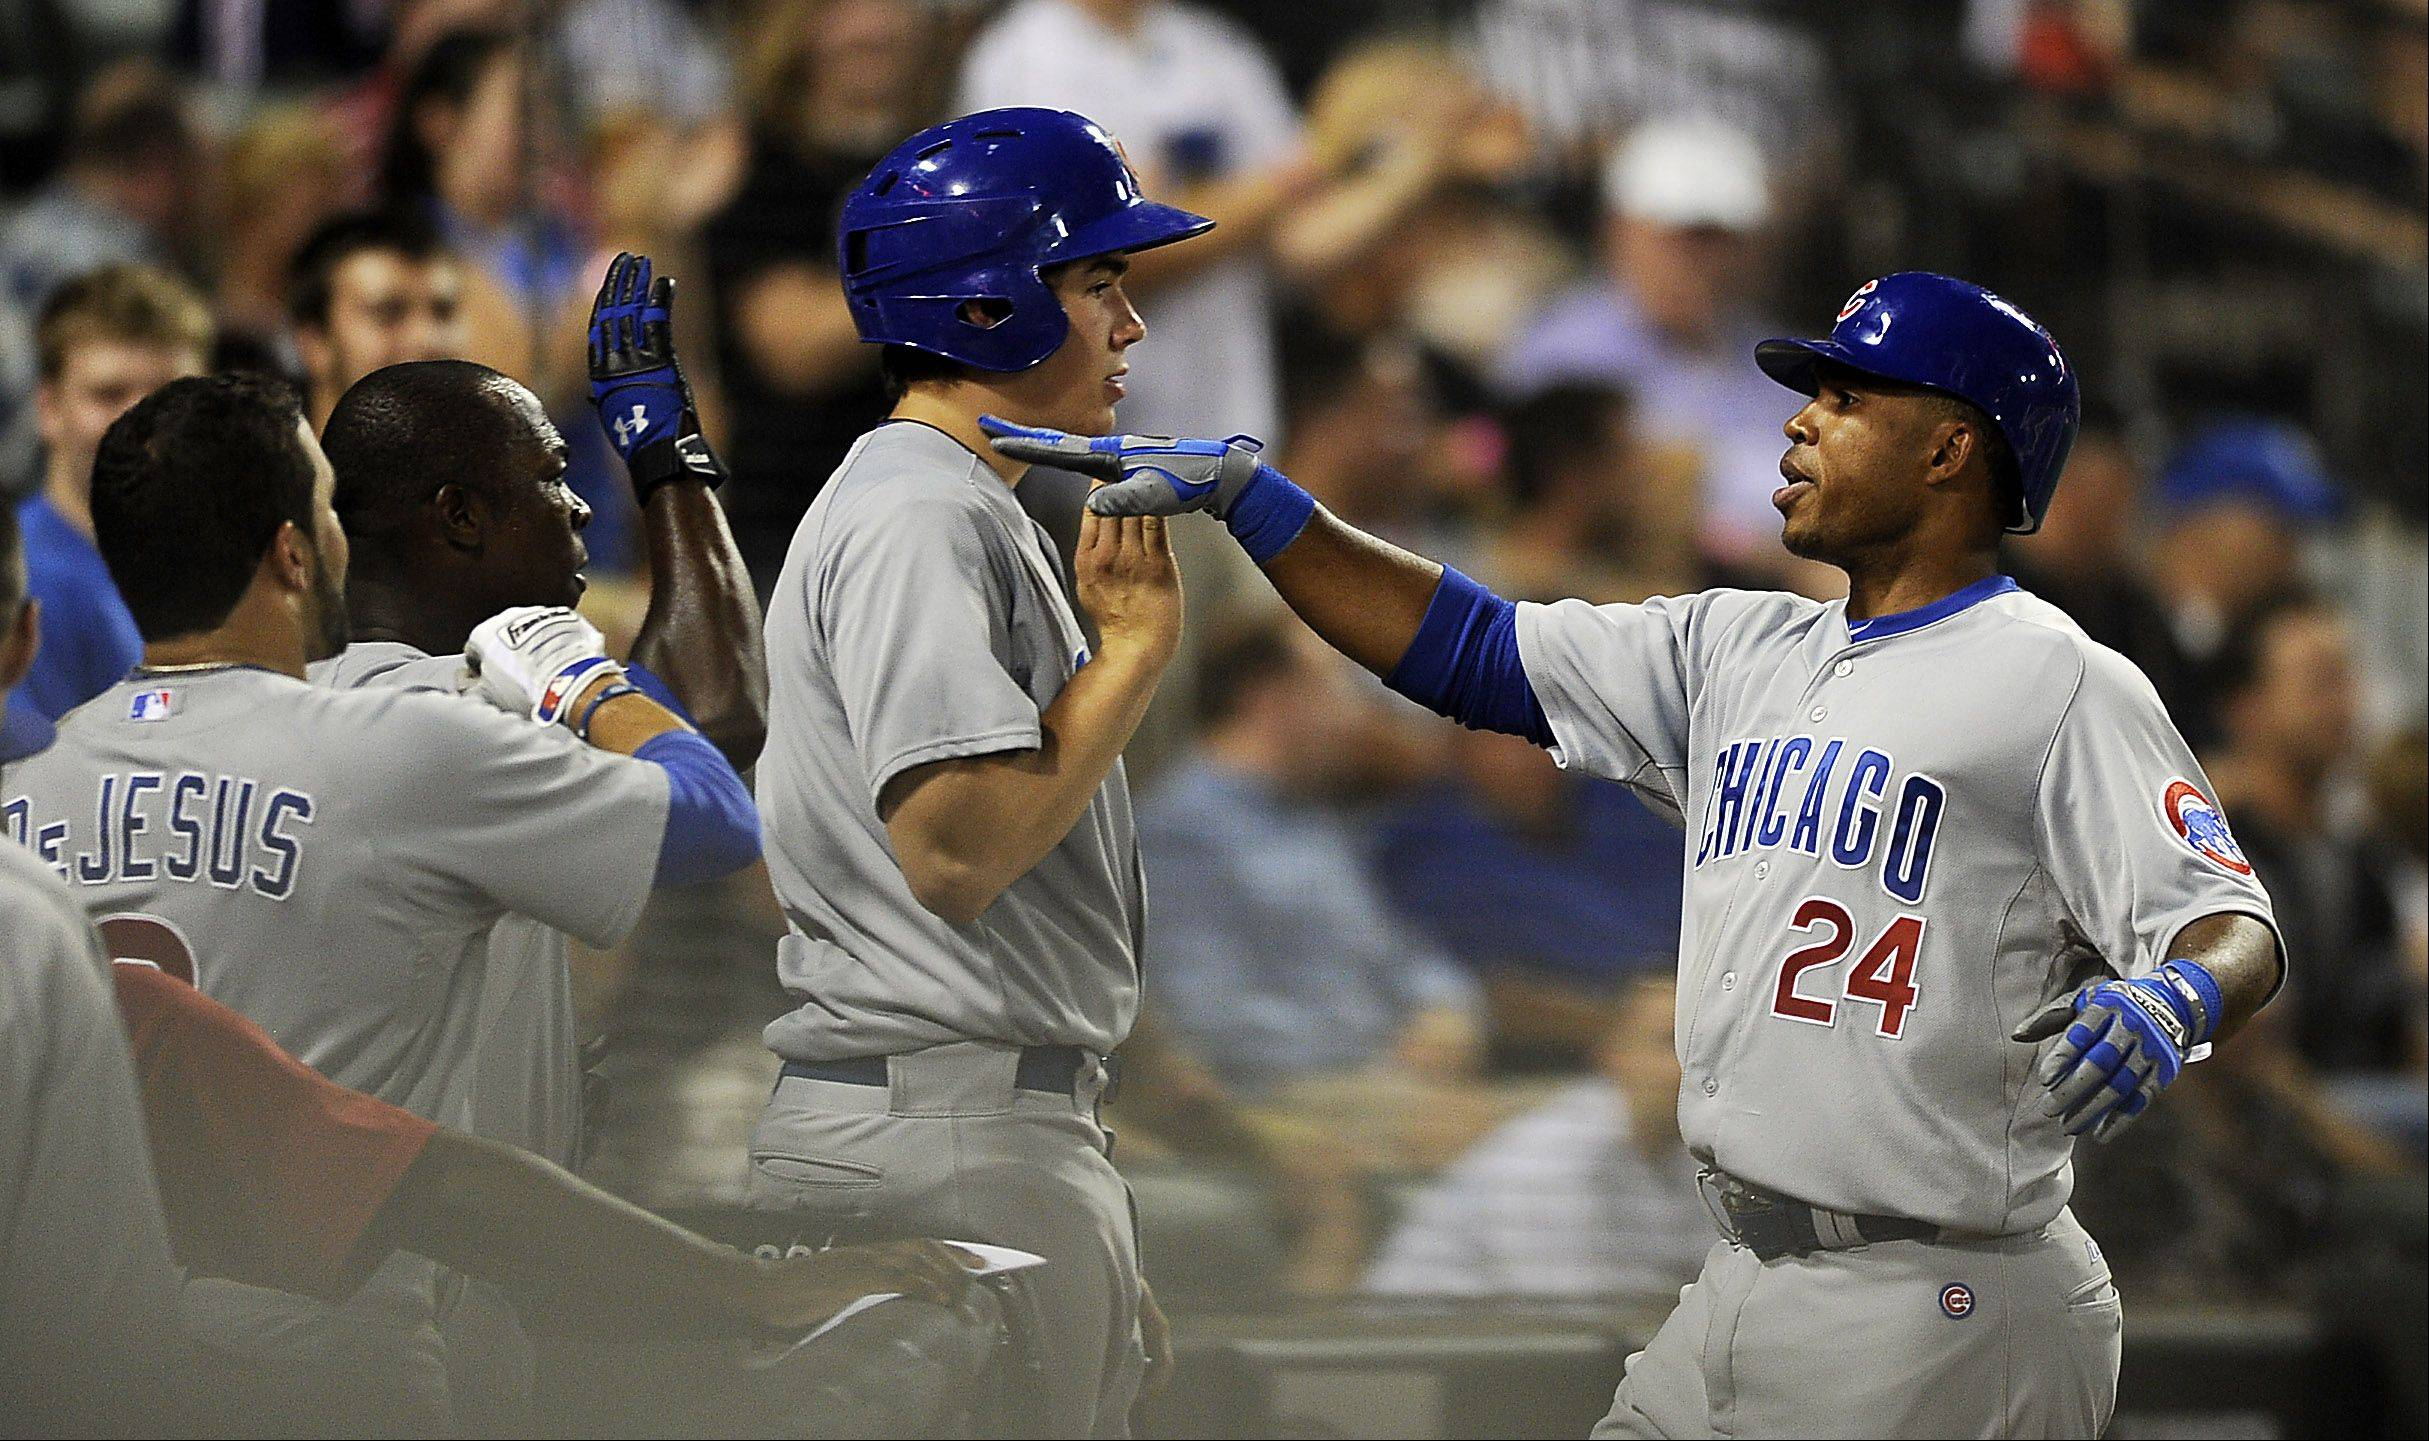 Chicago Cubs' Luis Valbuena hits a seventh inning home run.